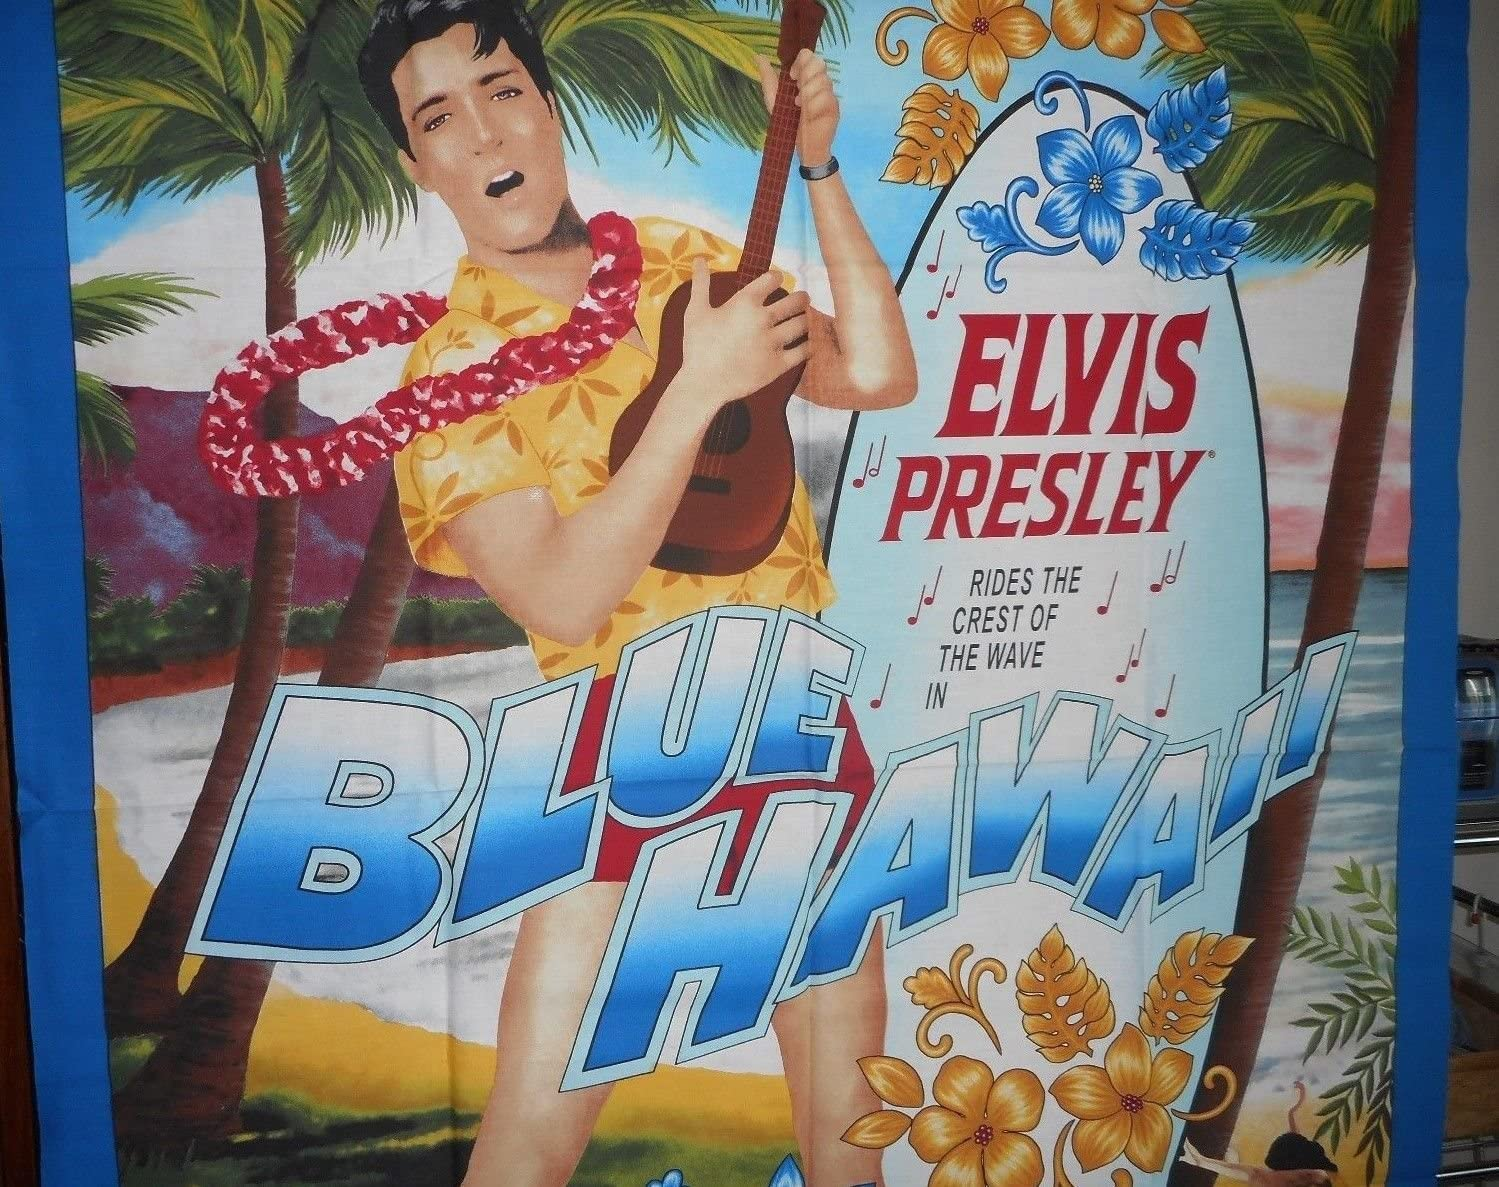 "Elvis Presley Block Hawaii Bongo Drums Square 6.5/"" x 6.5/"" Patch on Cotton Fabric"